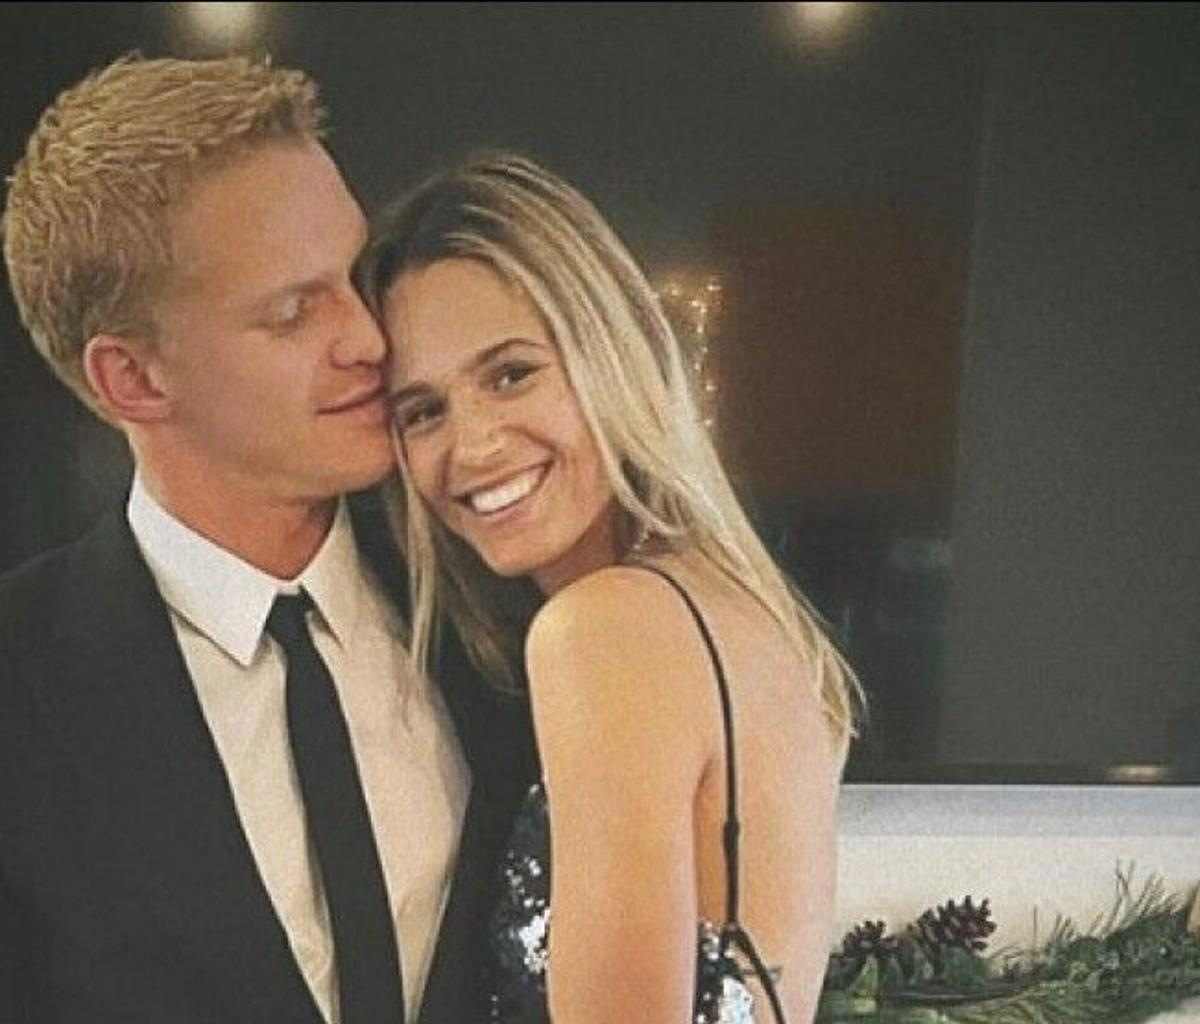 Cody Simpson And Marloes Stevens Have 'Long-Term' Potential' - She Reportedly Thinks There's 'Amazing Chemistry' Between Them!